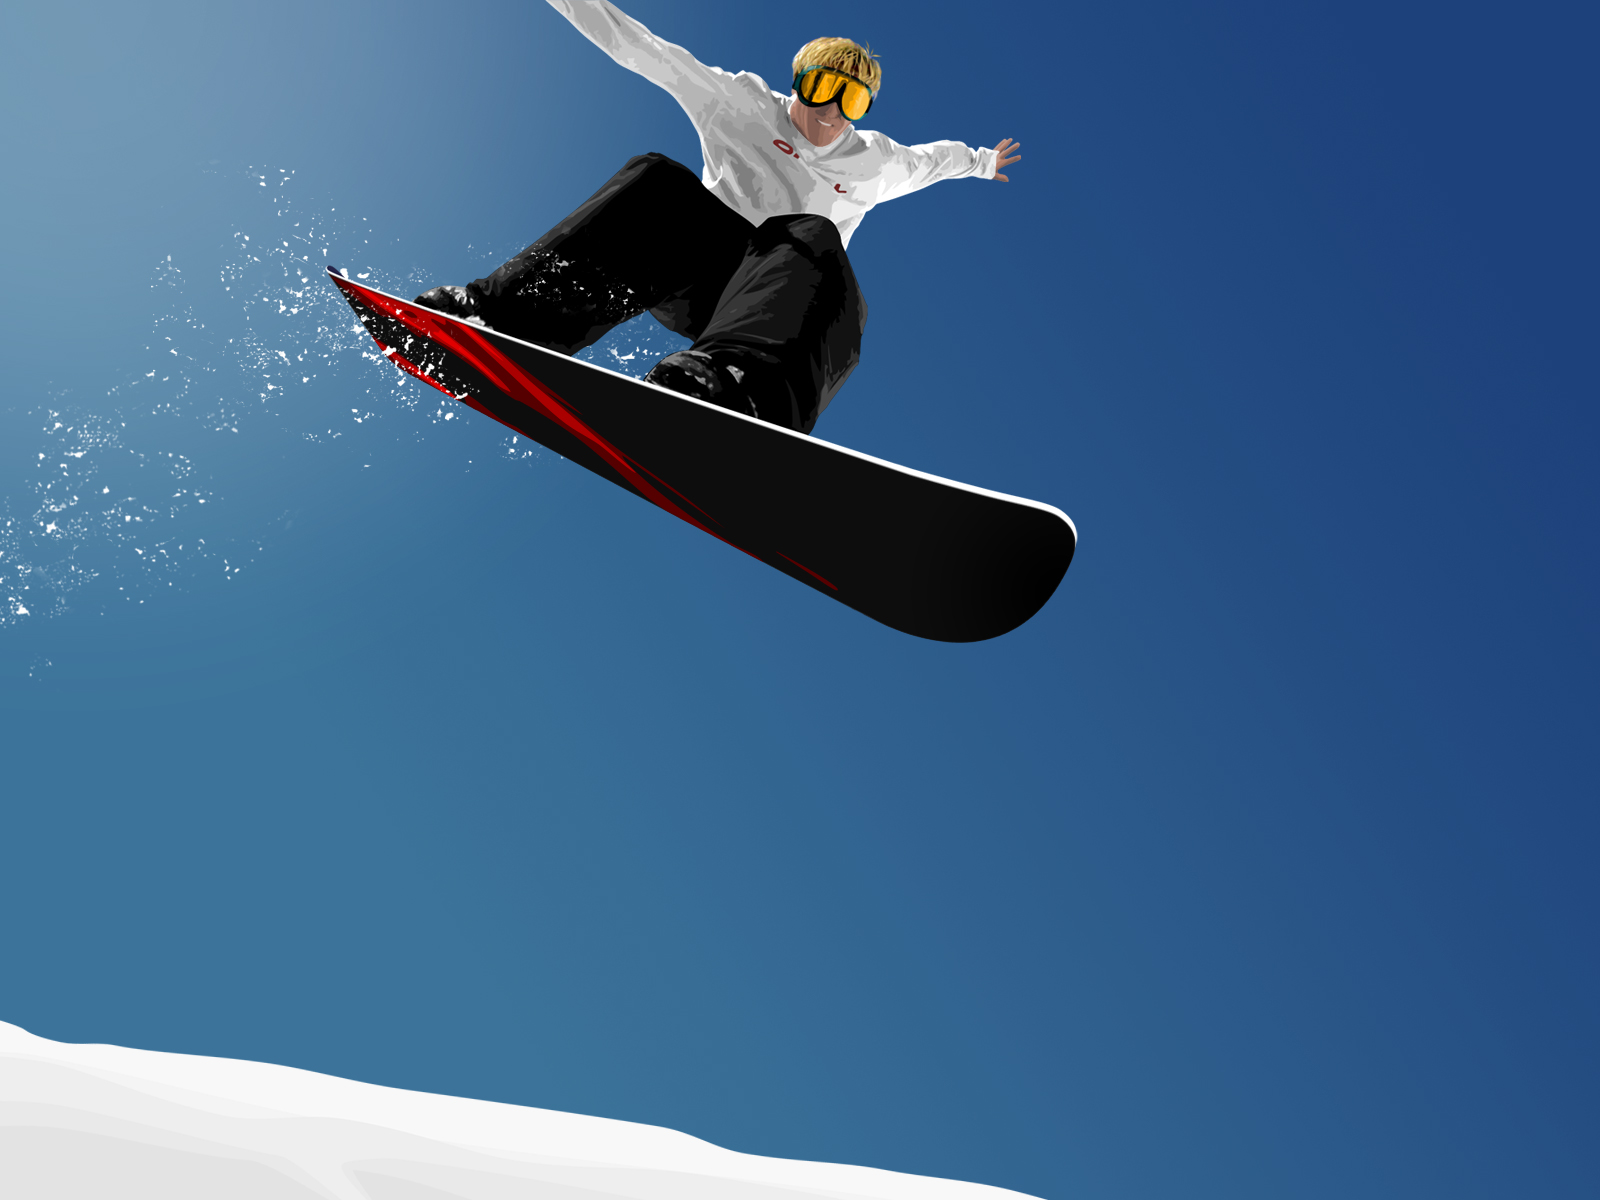 click to free download the wallpaper--Photos of Nature Landscape, Man in Snowboarding Play, the Blue and Mirror-Like Sky